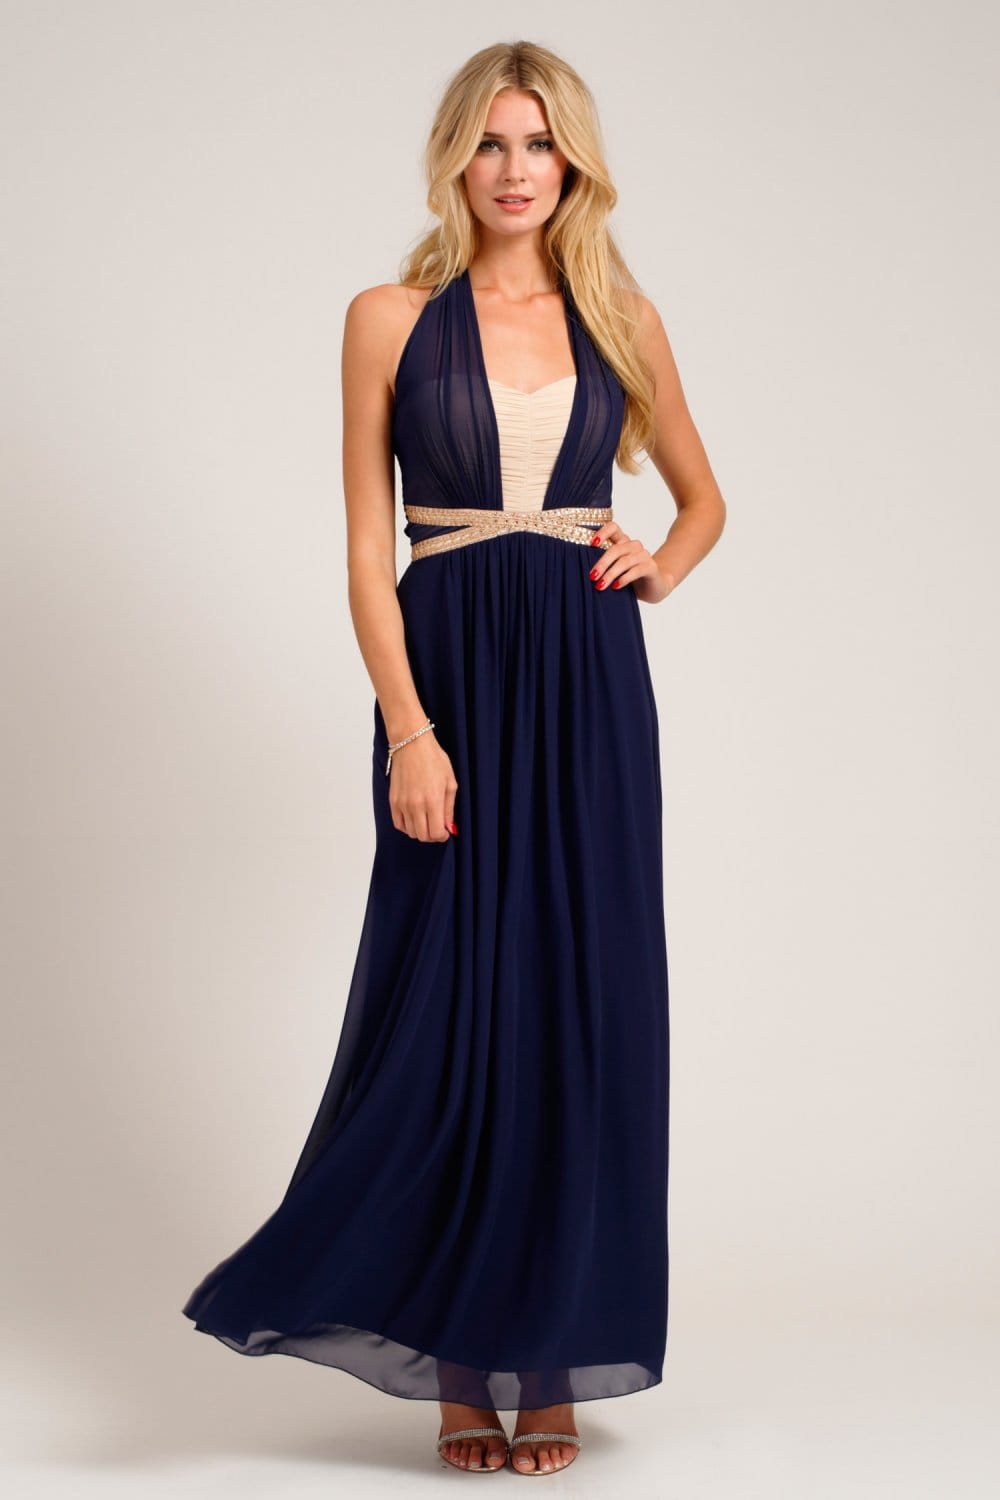 Navy & Cream Embellished Halterneck Chiffon Maxi Dress